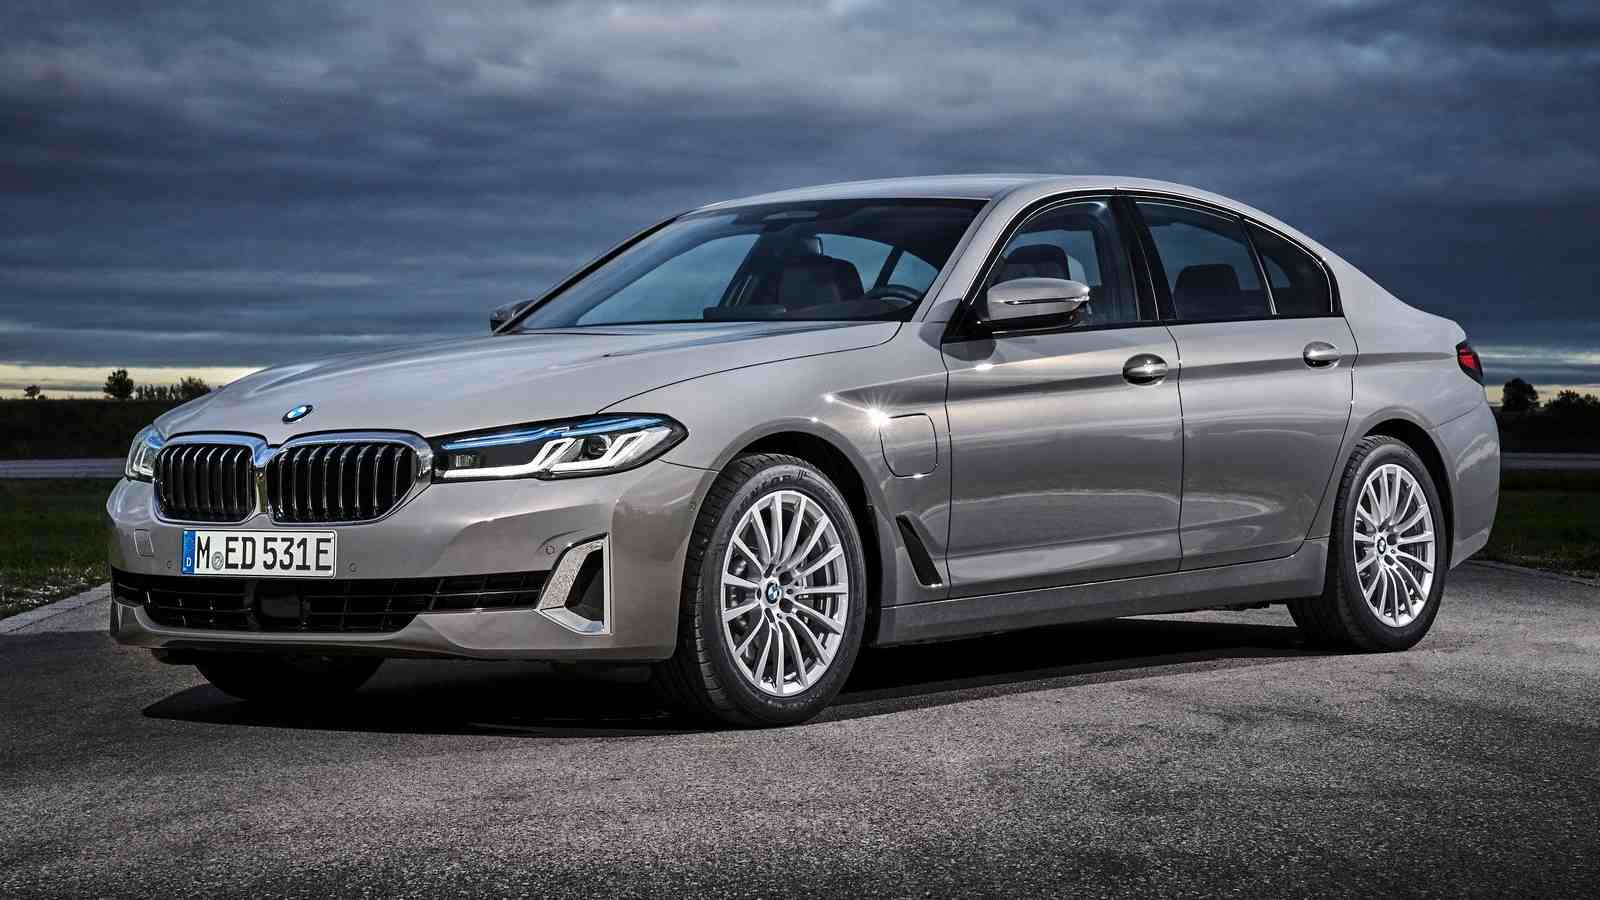 The launch of the BMW 5 Series facelift in India is scheduled for June 24, to get styling adjustments and more equipment – Technology News, Firstpost